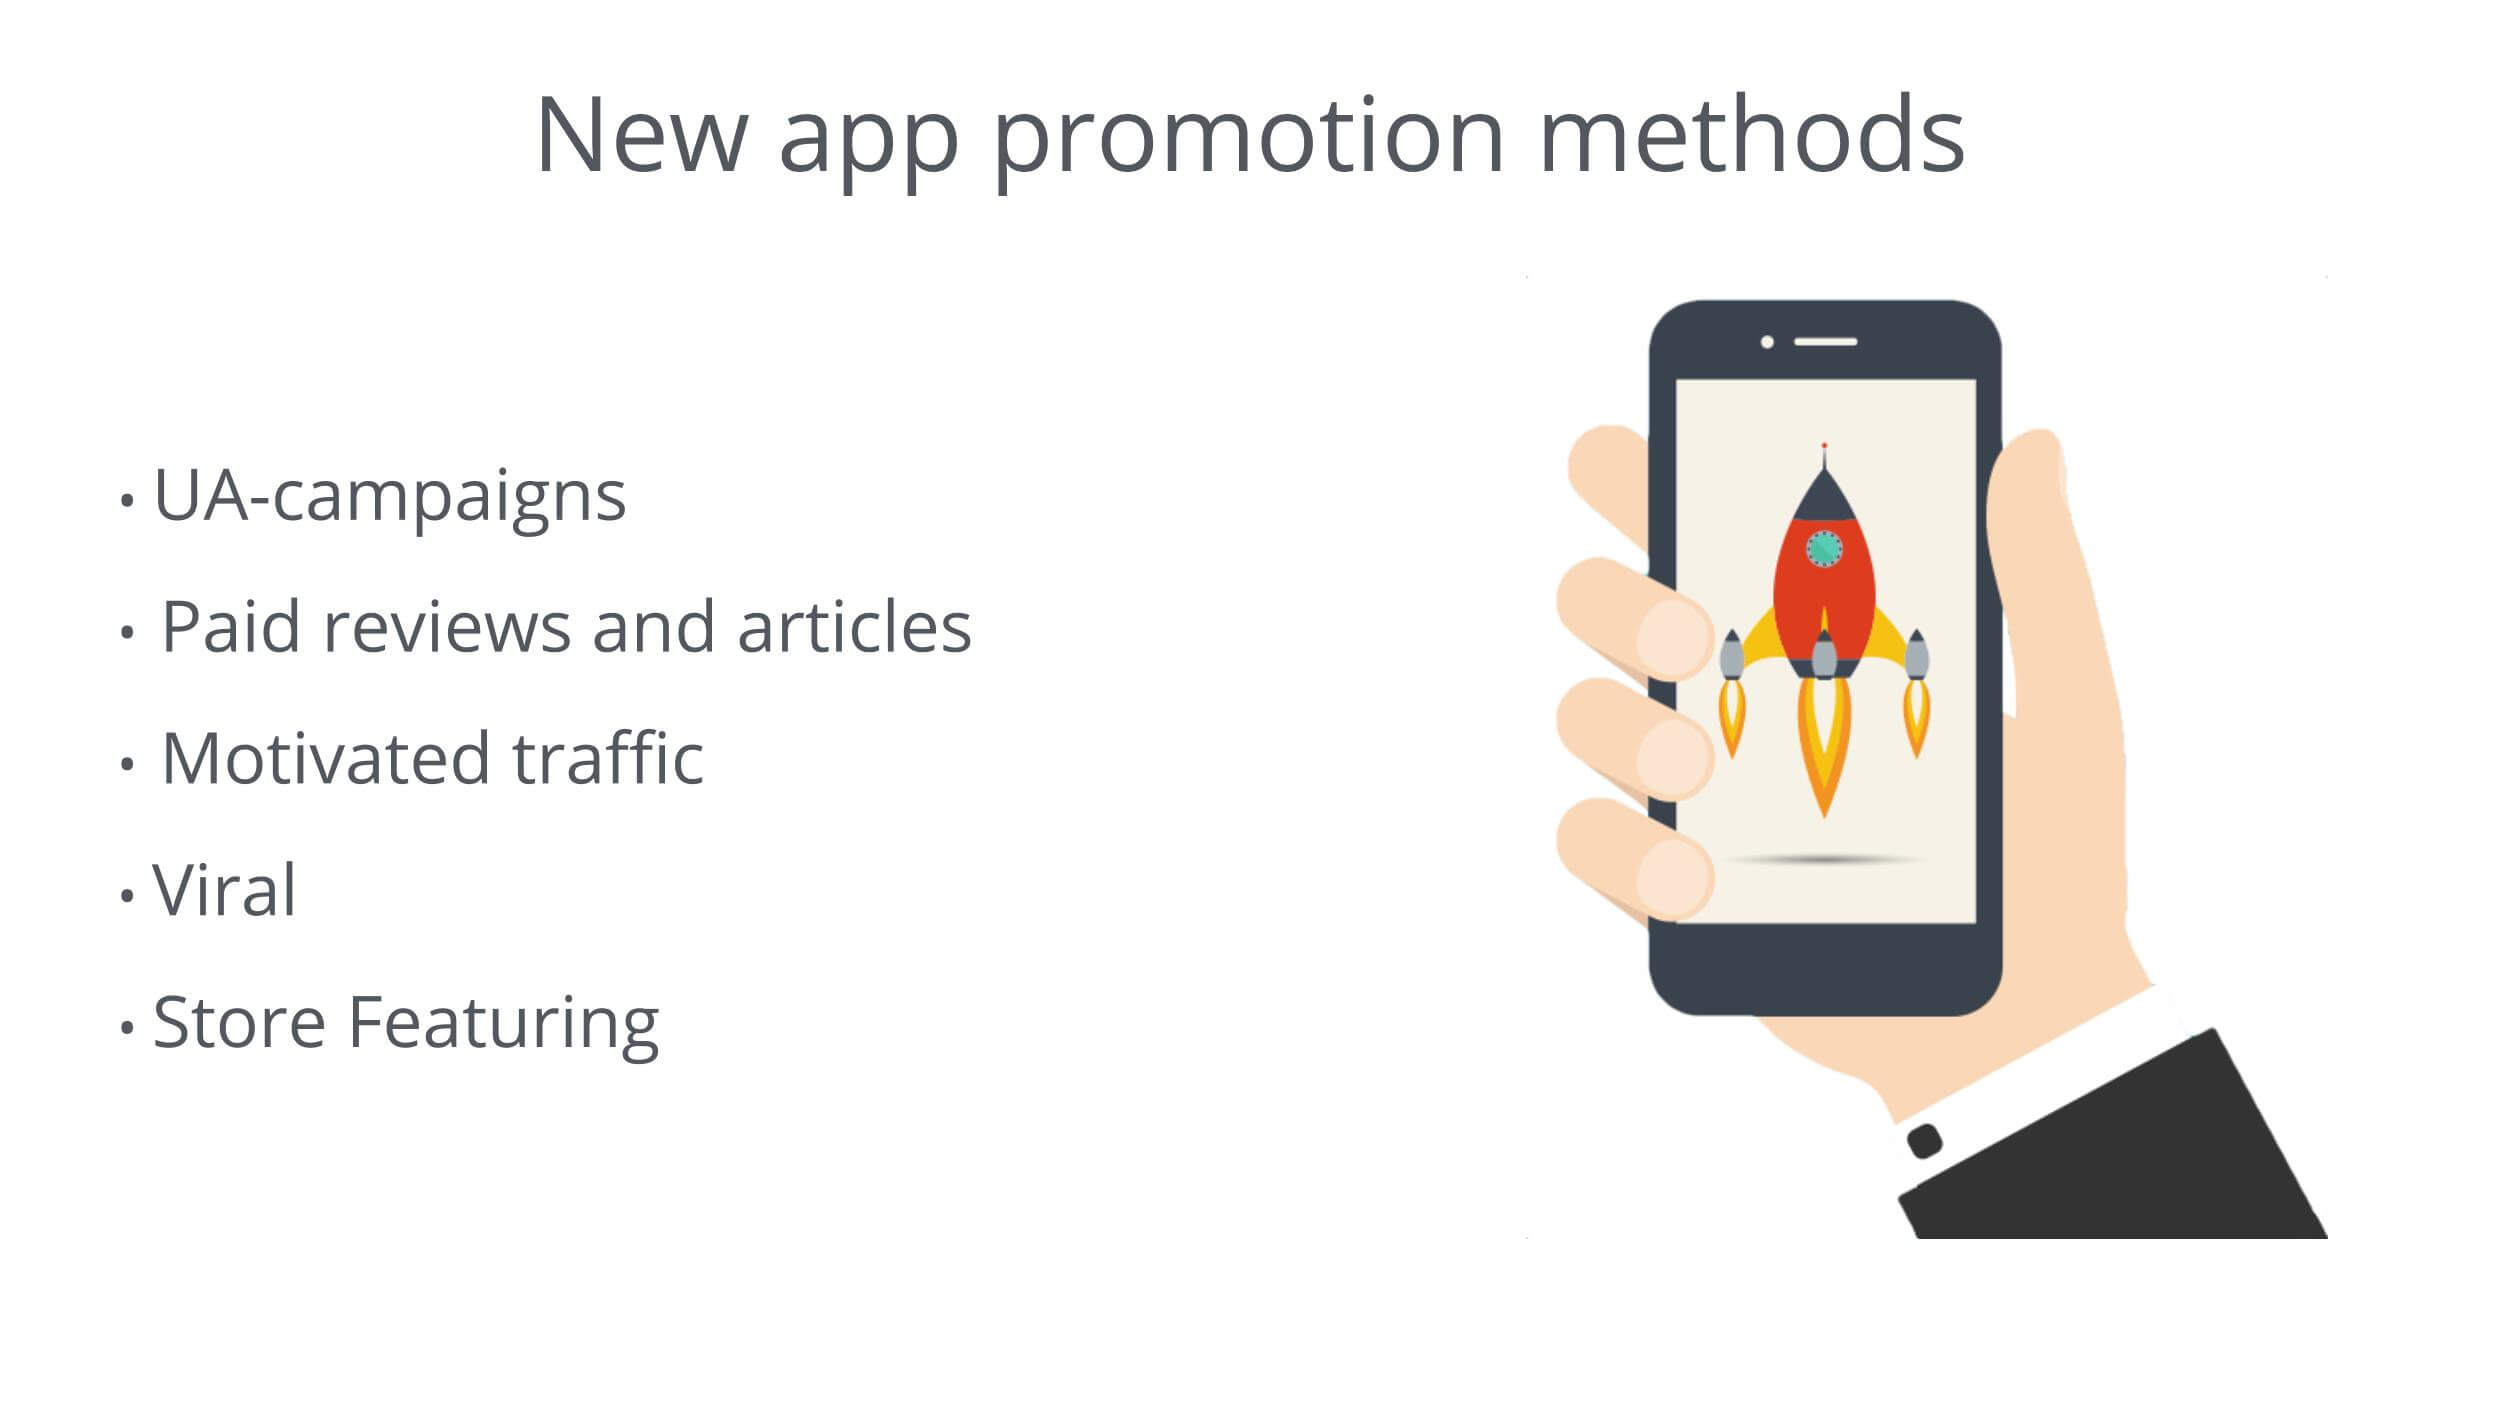 mobile app promotion and aso tips app store optimization so here we have a kind of win win situation the user is happy to get what he was looking for and we are pleased to get 1 promo methods